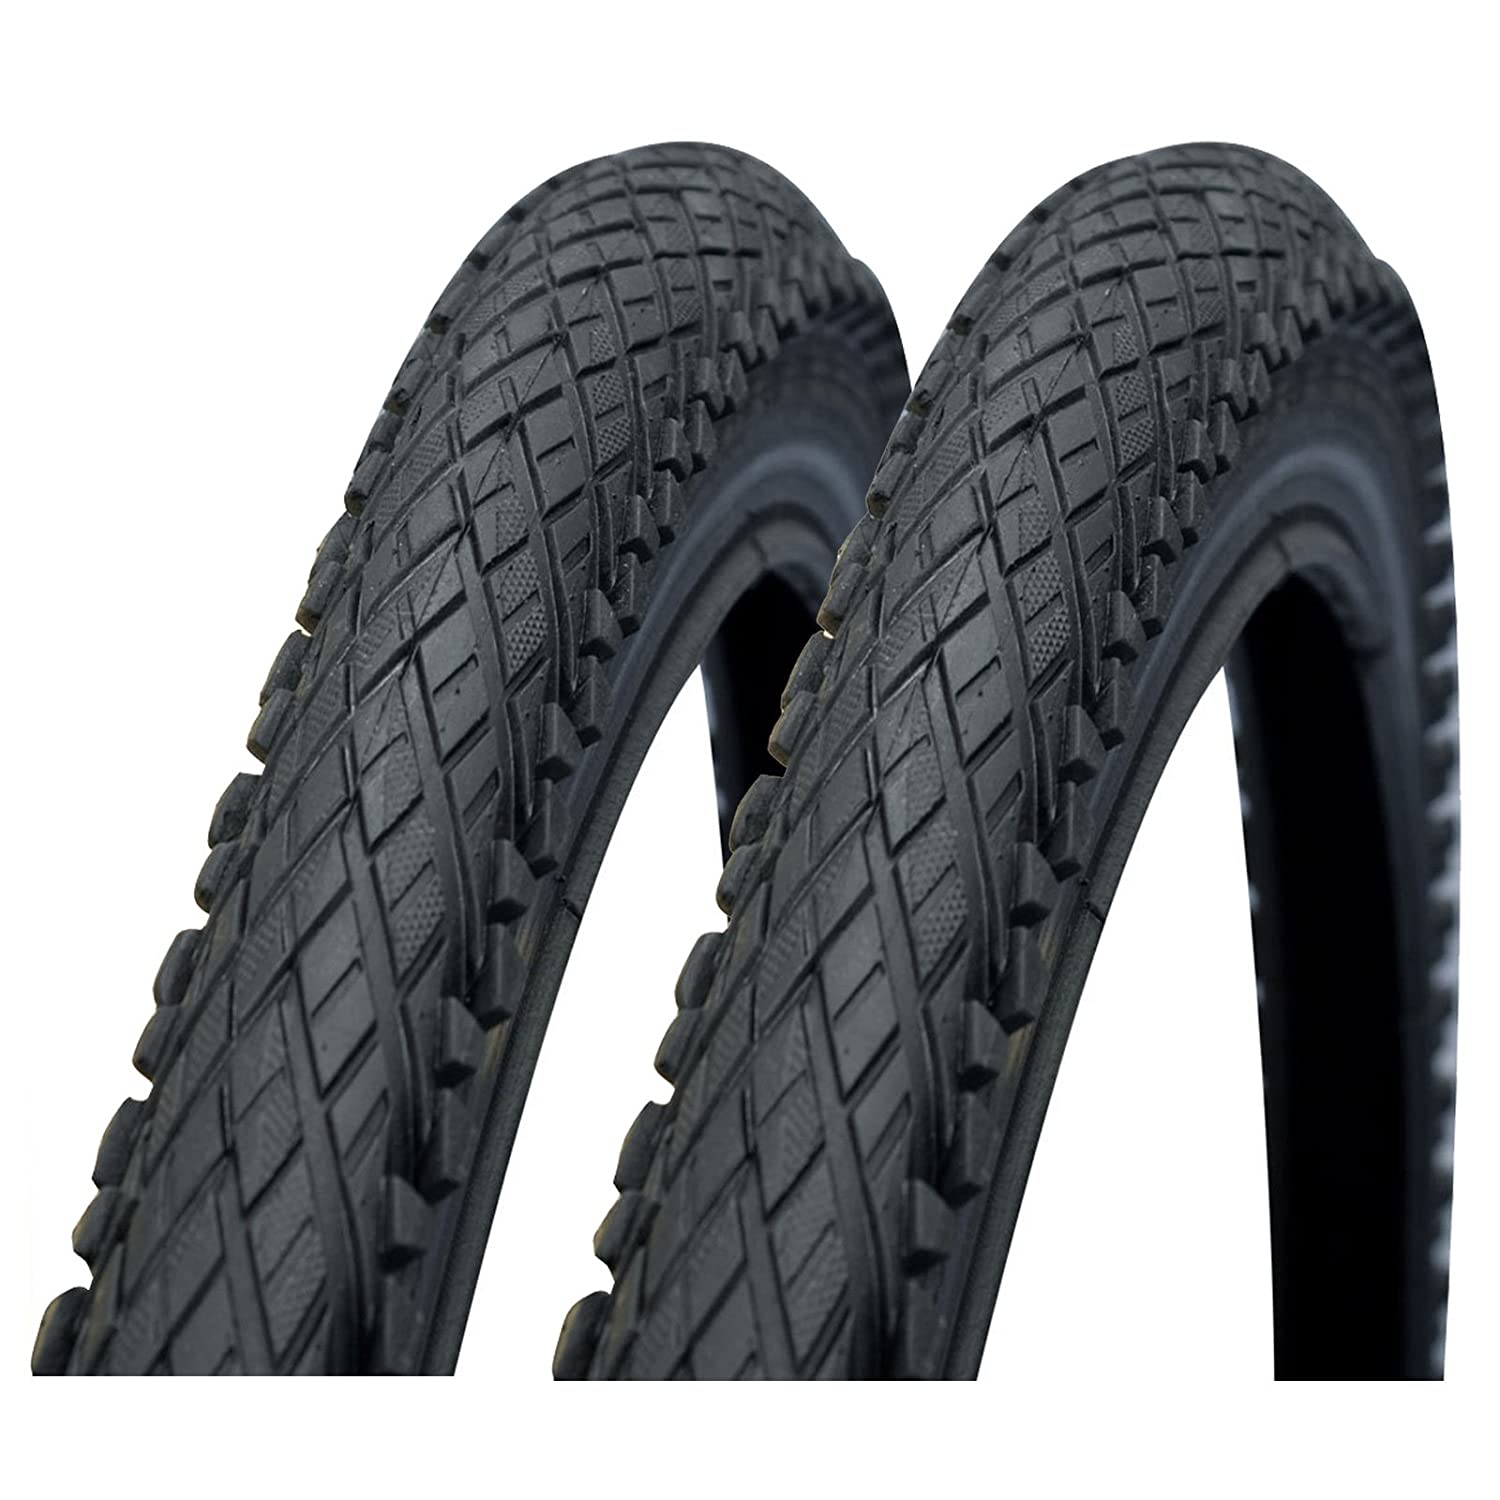 "Cross Country Tyres 26 x 2.00/"" Black Bike Tires 2 x Impac CrossPac MTB"